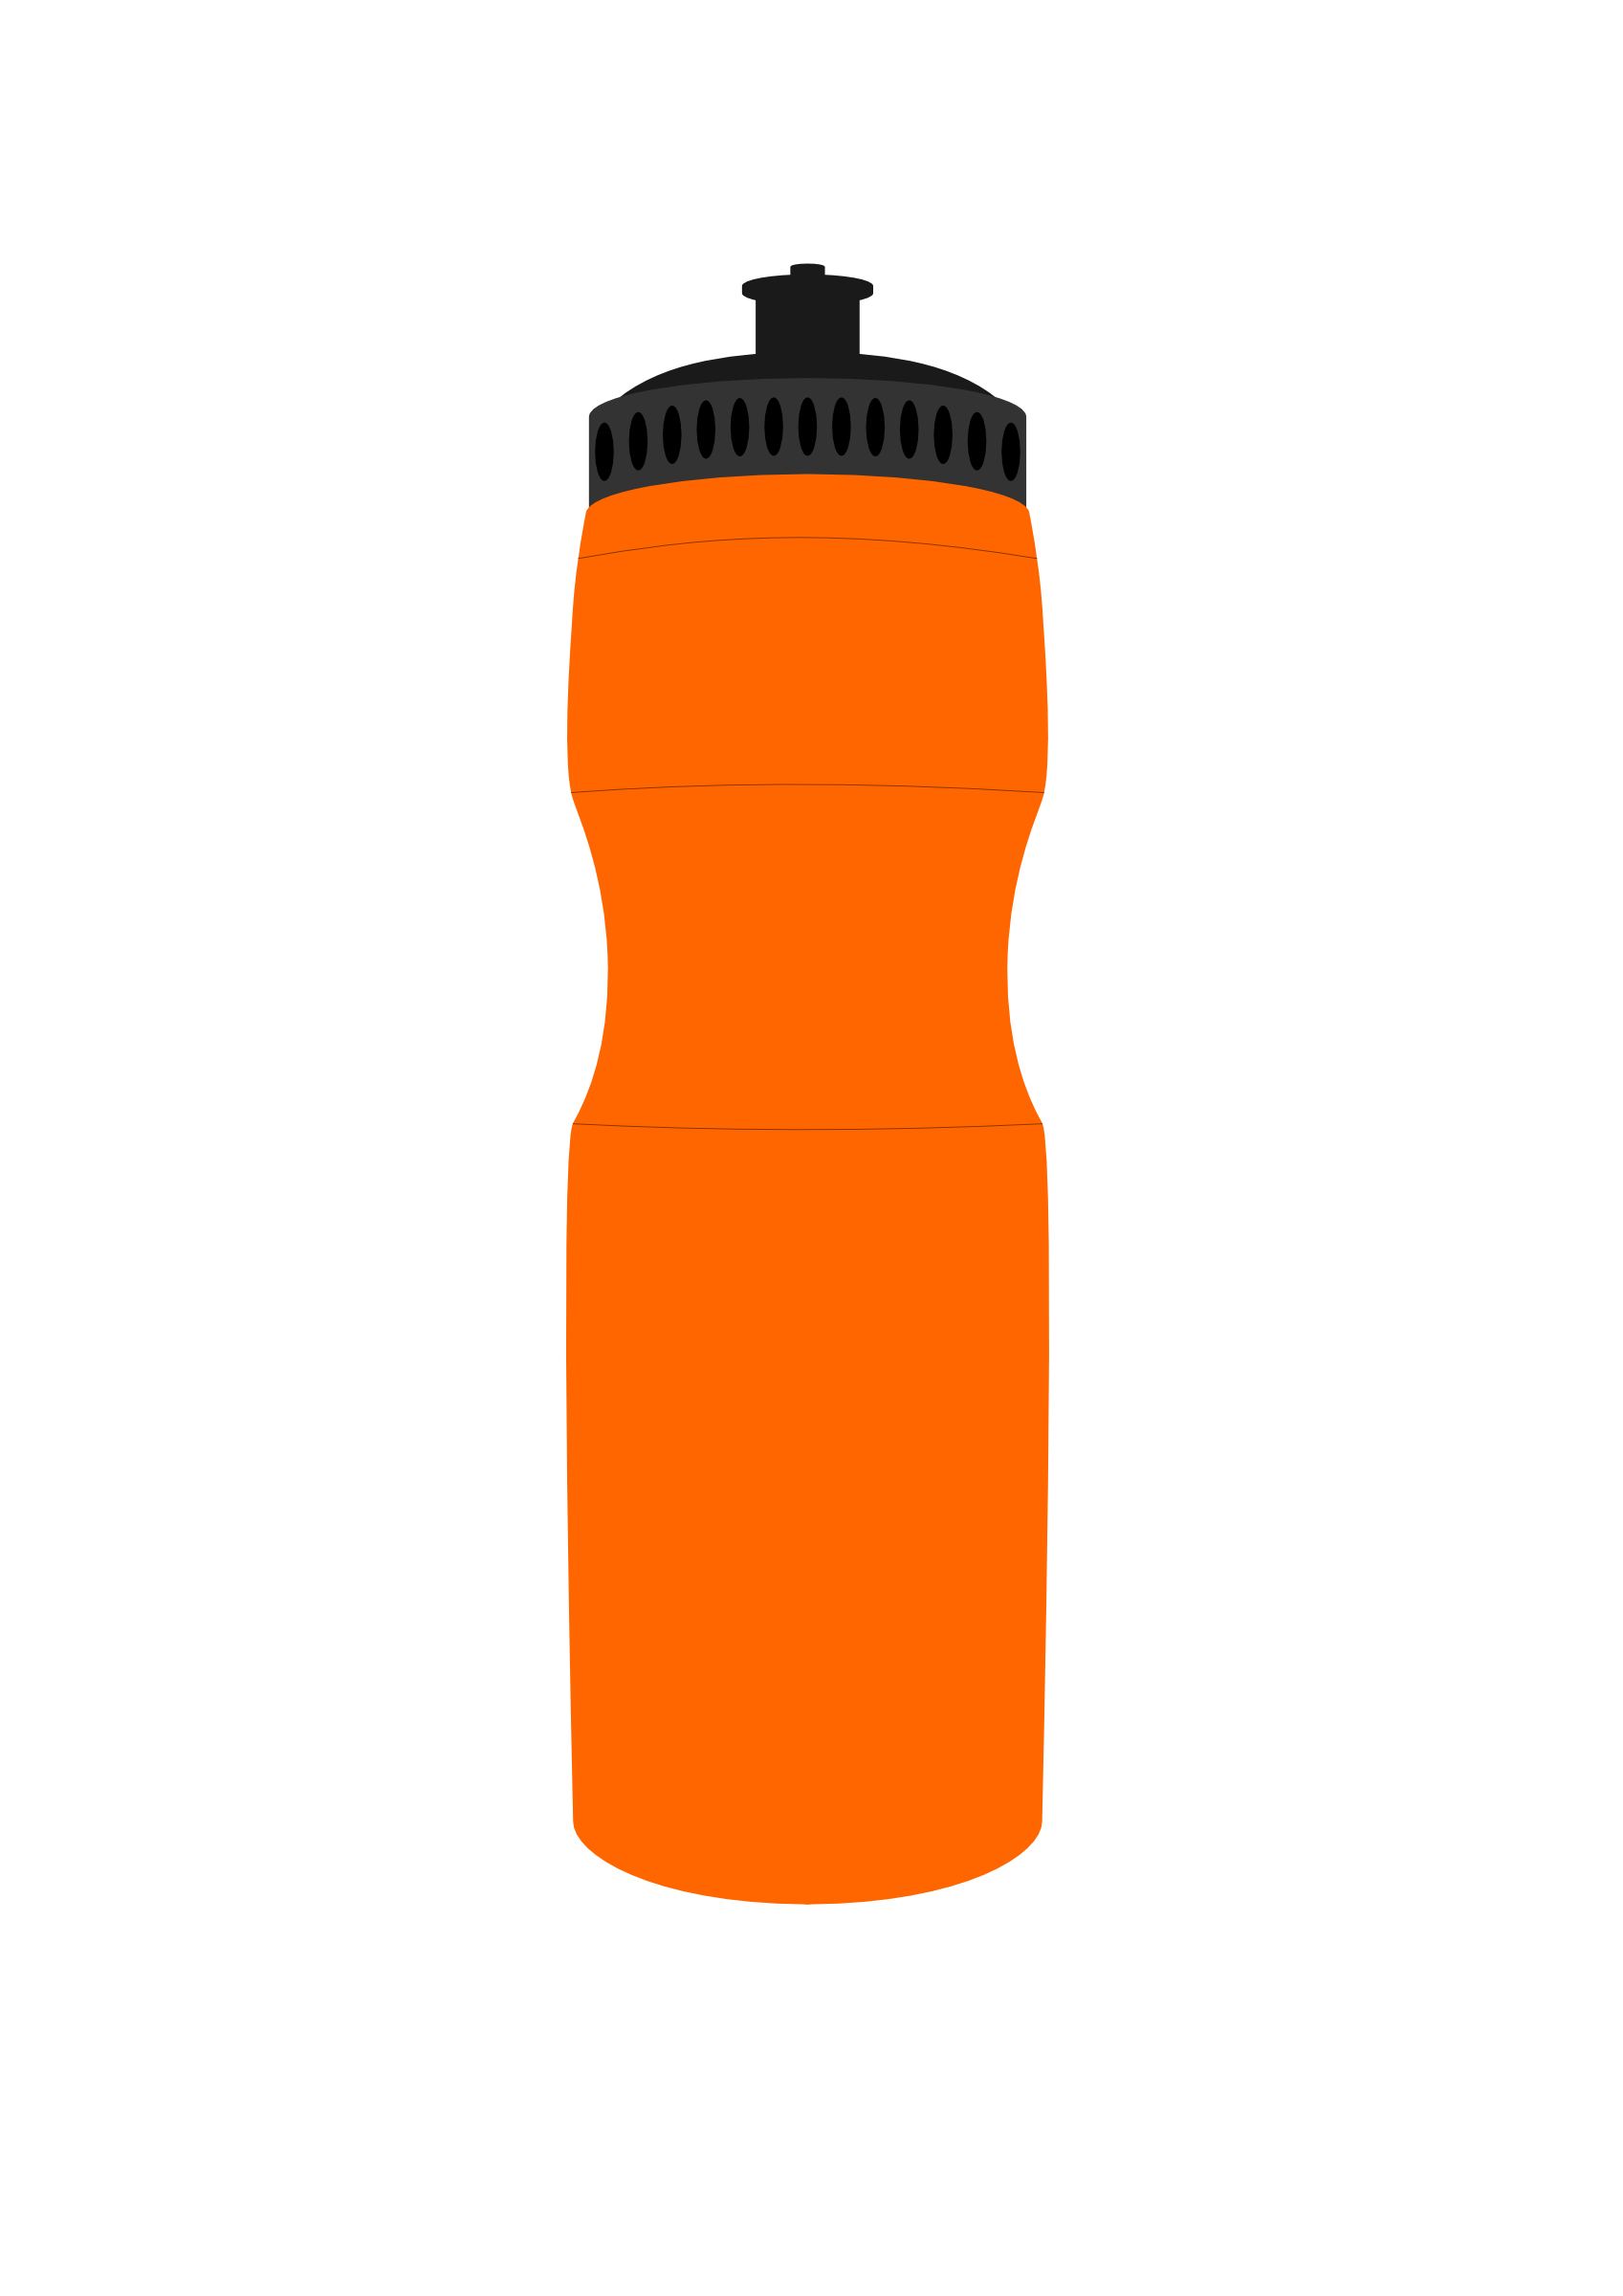 Water bottle clipart free images 2